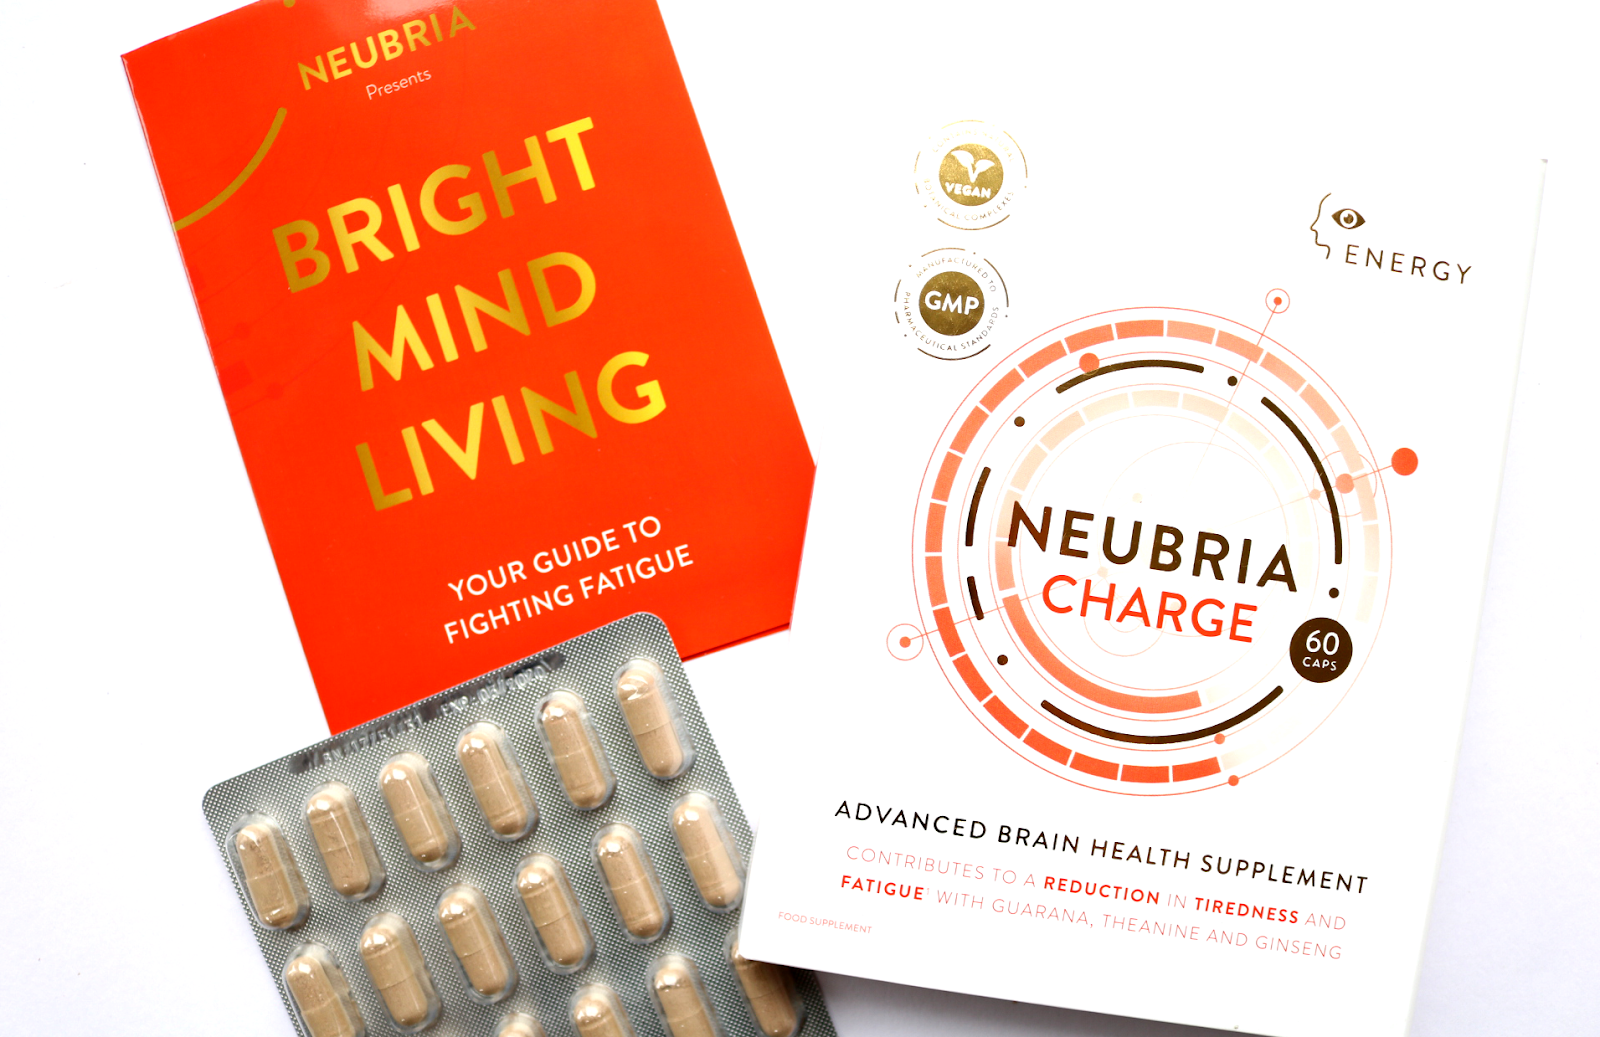 Neubria Charge Advanced Brain Health Supplements review